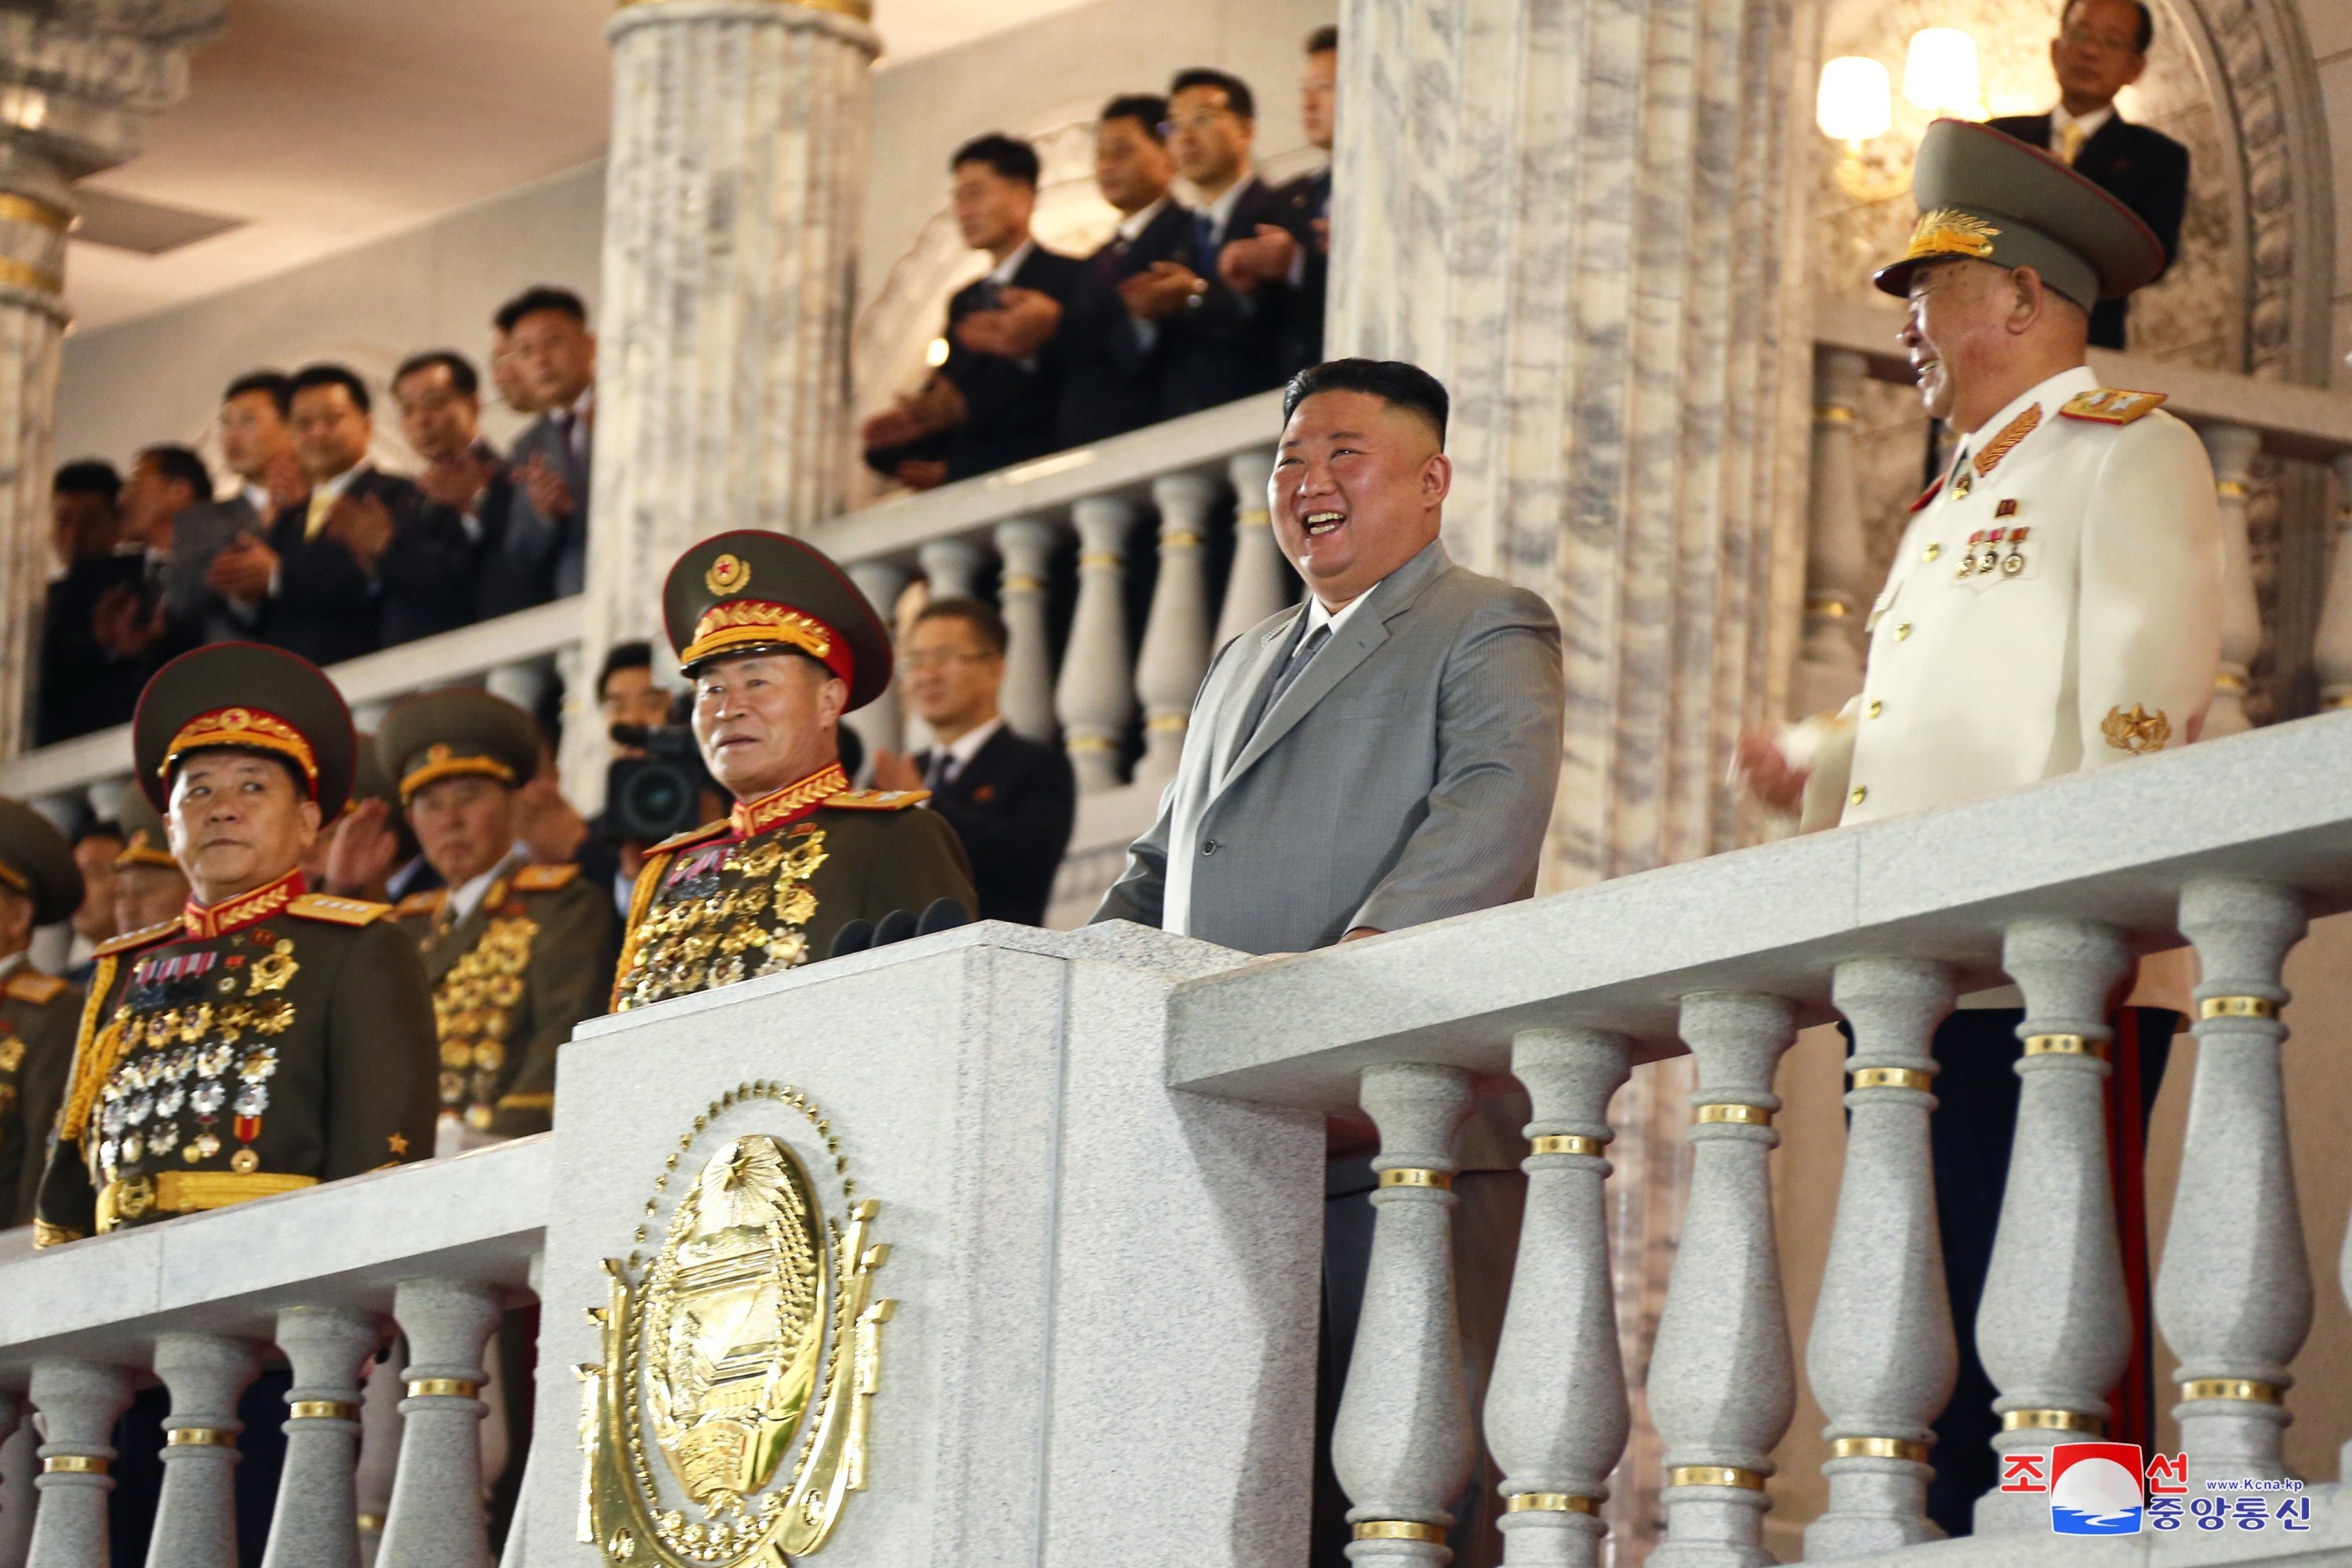 A photo released by the official North Korean Central News Agency (KCNA) shows North Korean leader Kim Jong Un (2-R) during a military parade on the occasion of the 75th founding anniversary of the Workers' Party of Korea, at Kim Il Sung Square in Pyongyang, North Korea, Oct. 10, 2020. (Photo by KCNA VIA EPA)